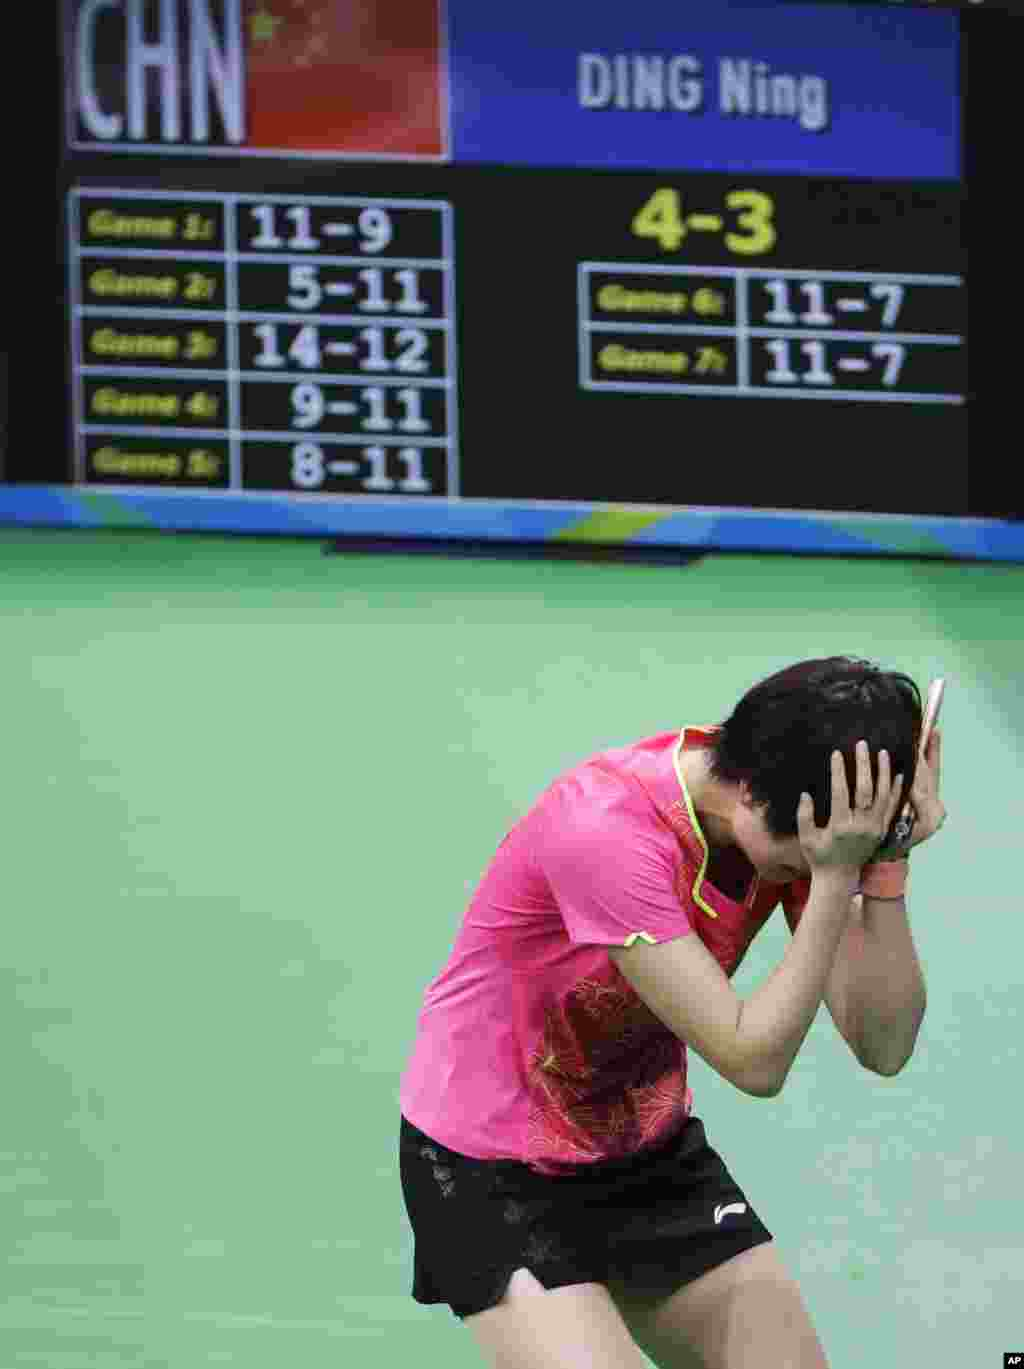 Ding Ning, of China, reacts after defeating Li Xiaoxia, of China, in the women's singles table tennis gold medal match at the 2016 Summer Olympics in Rio de Janeiro, Brazil, Wednesday, Aug. 10, 2016.